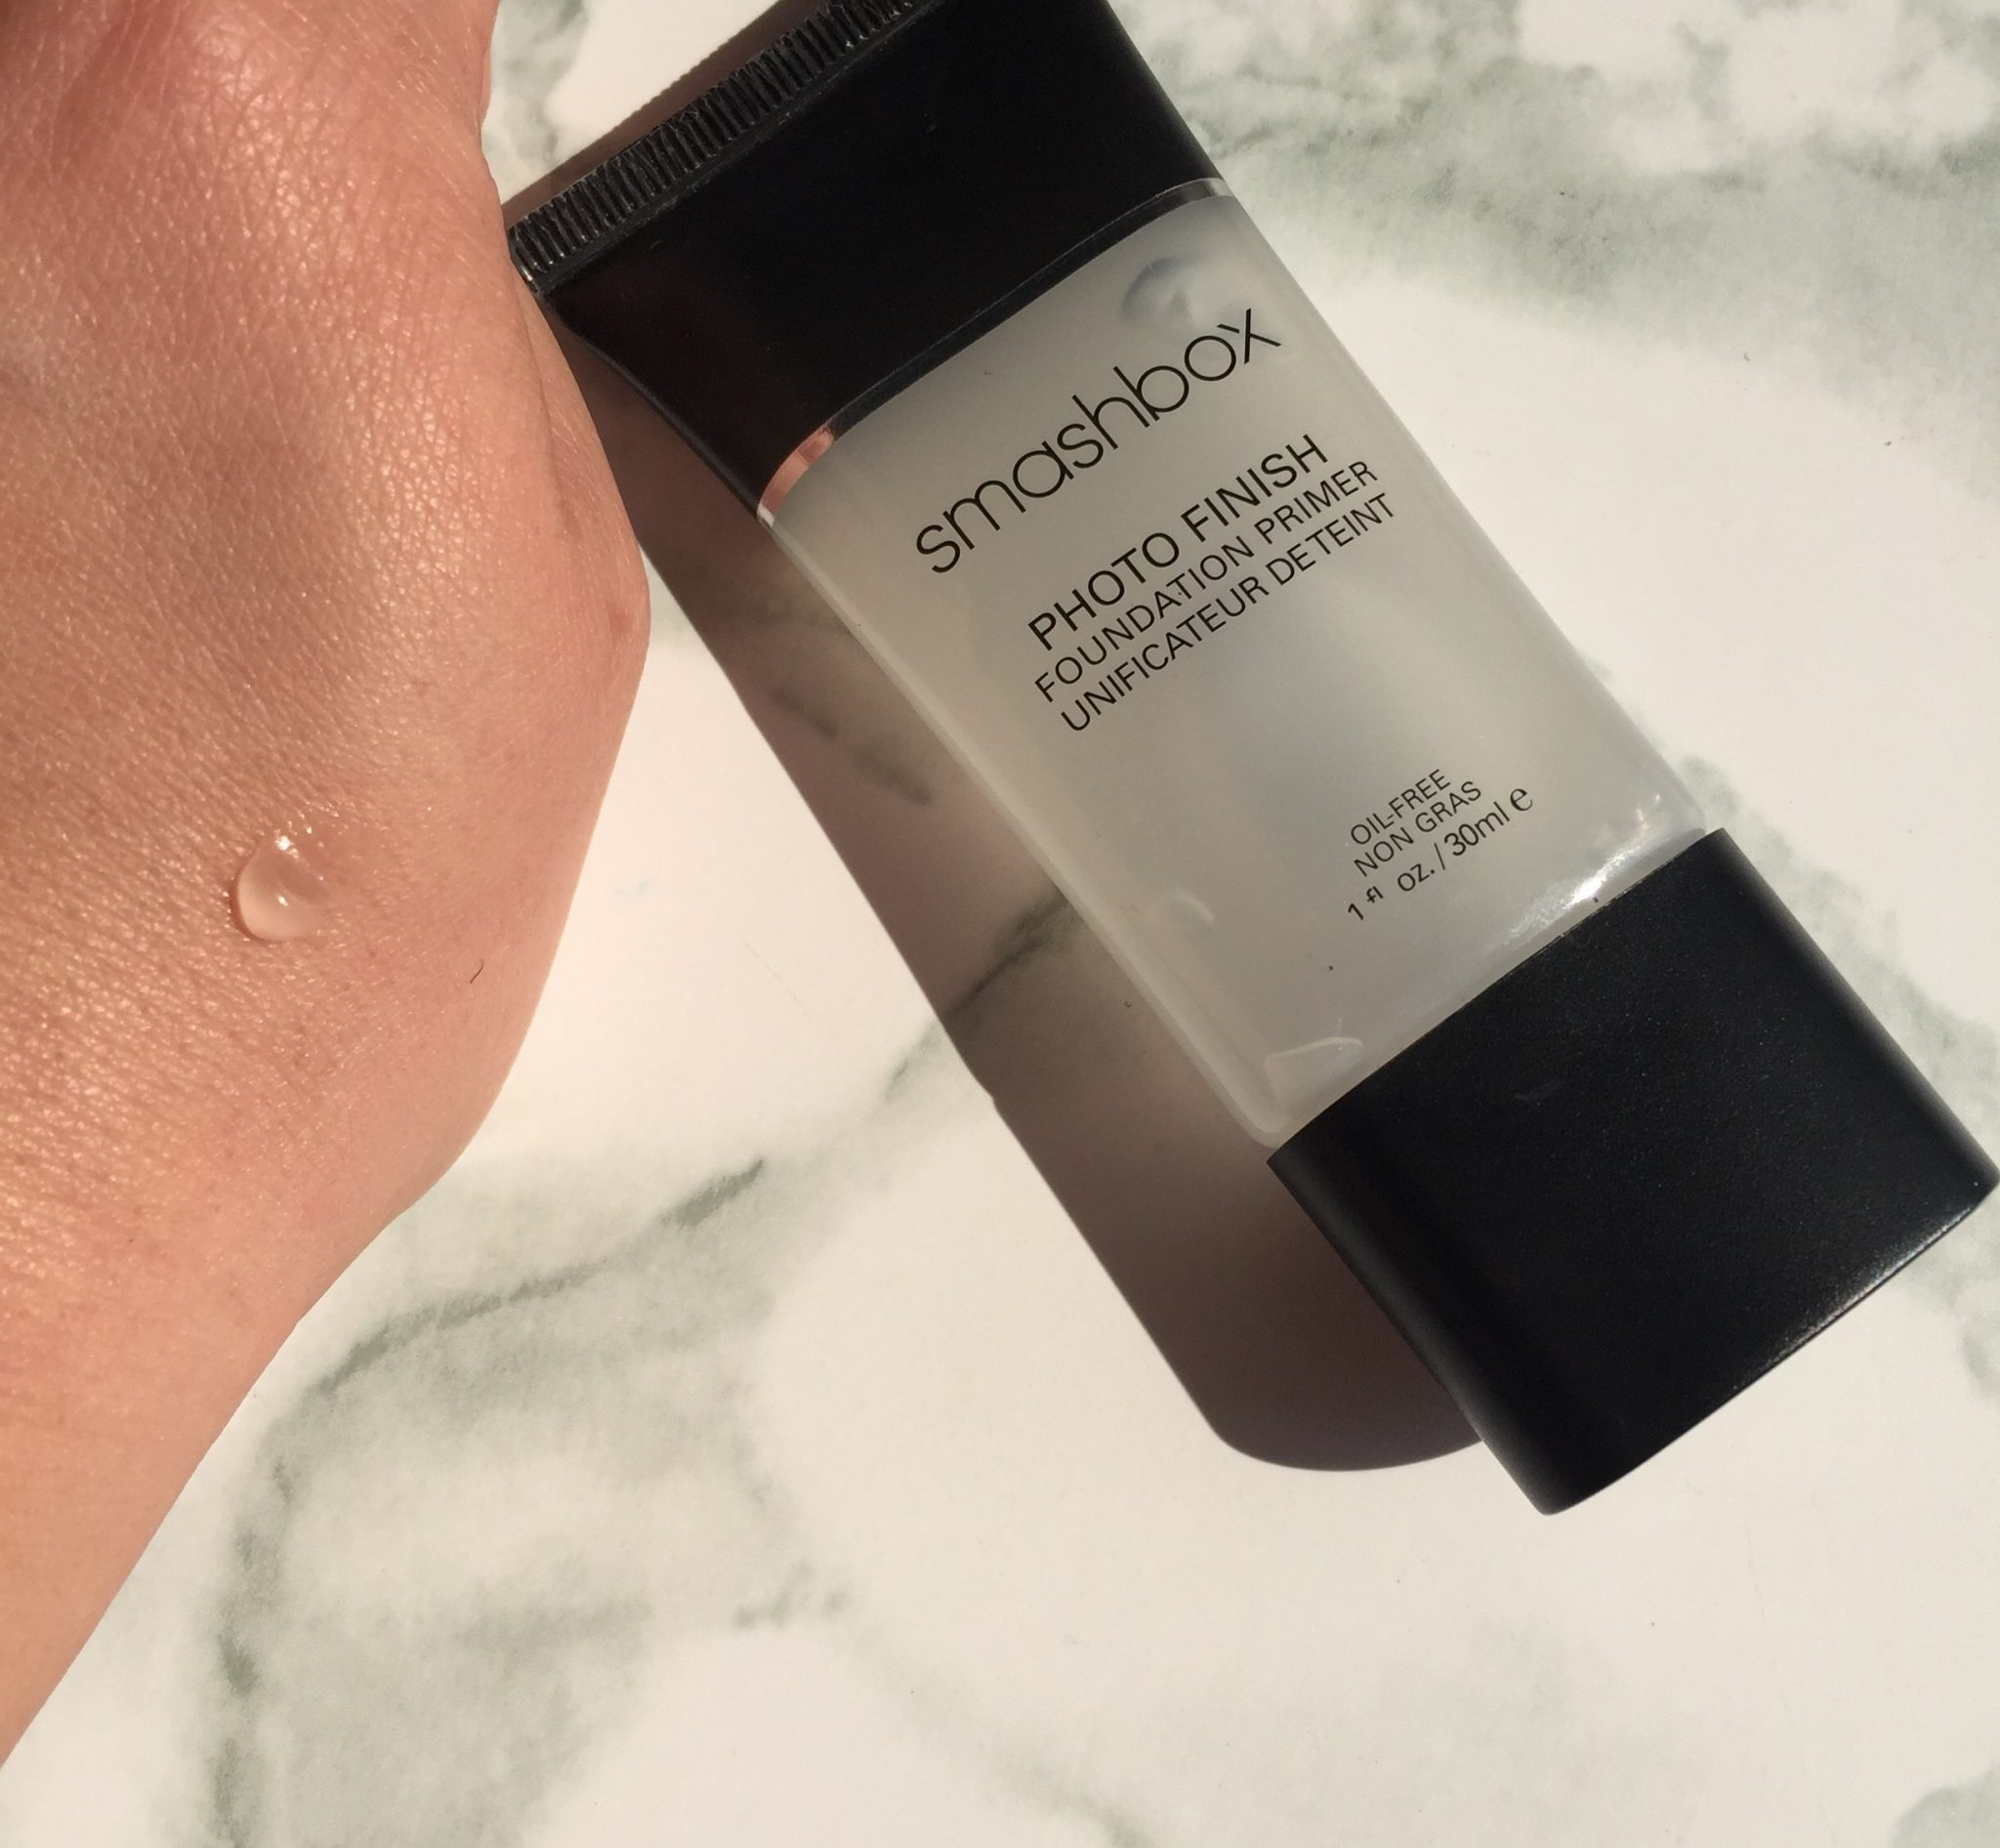 Smashbox PhotoFinish Primer